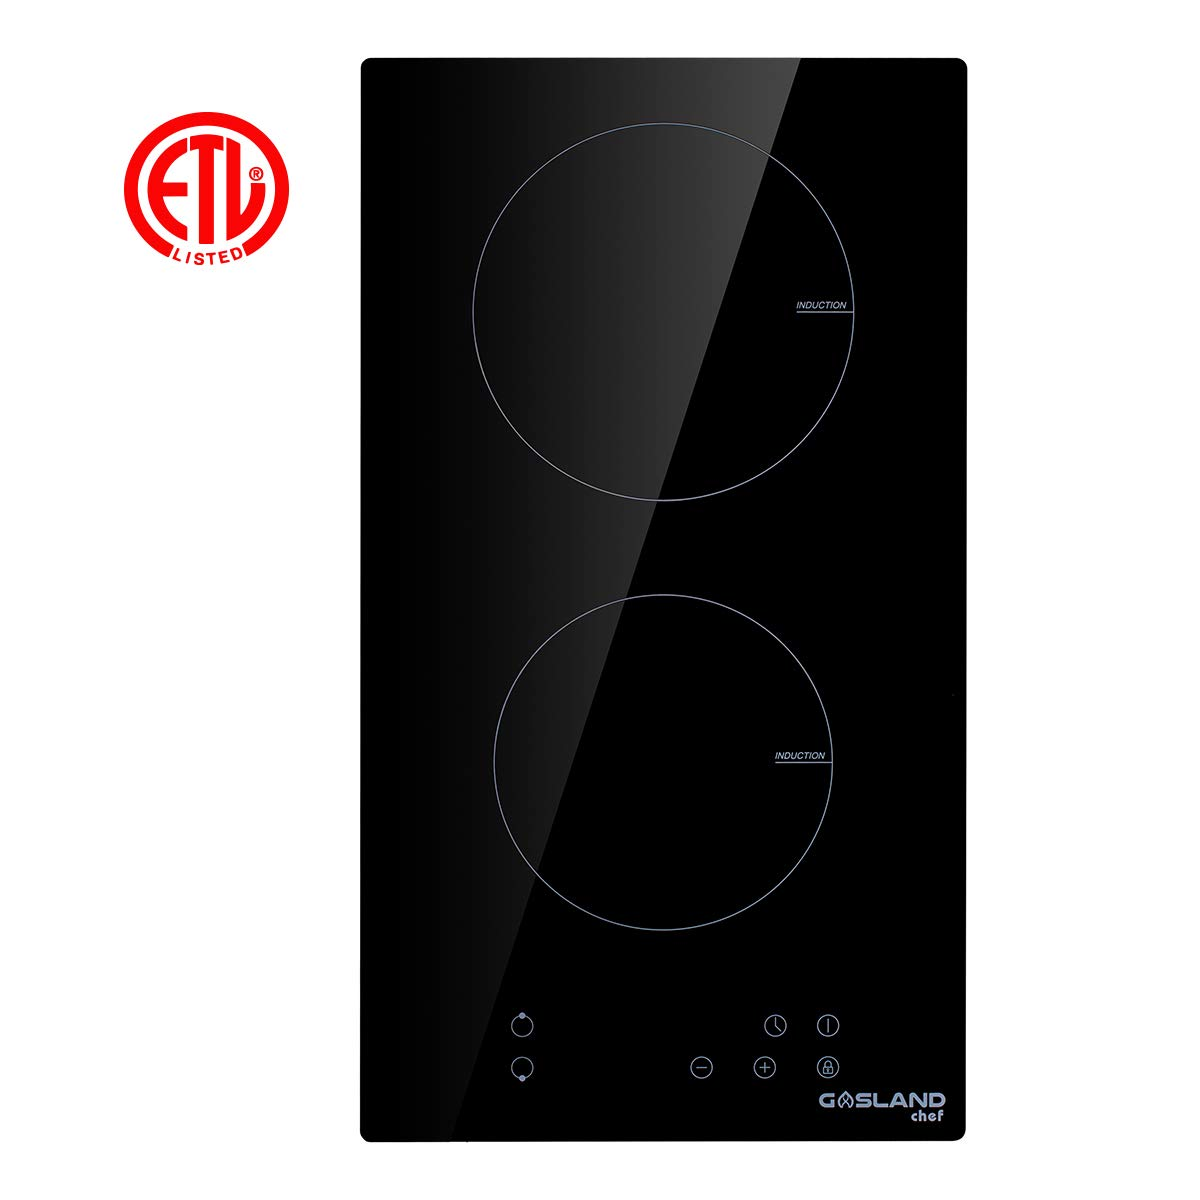 Induction Cooktop, Gasland chef IH30BF Built-in Induction Cooker, Vitro Ceramic Surface Electric Cooktop, 12'' Electric Stove With 2 Burners, ETL Safety Certified, Kids Safety Lock & Easy To Clean